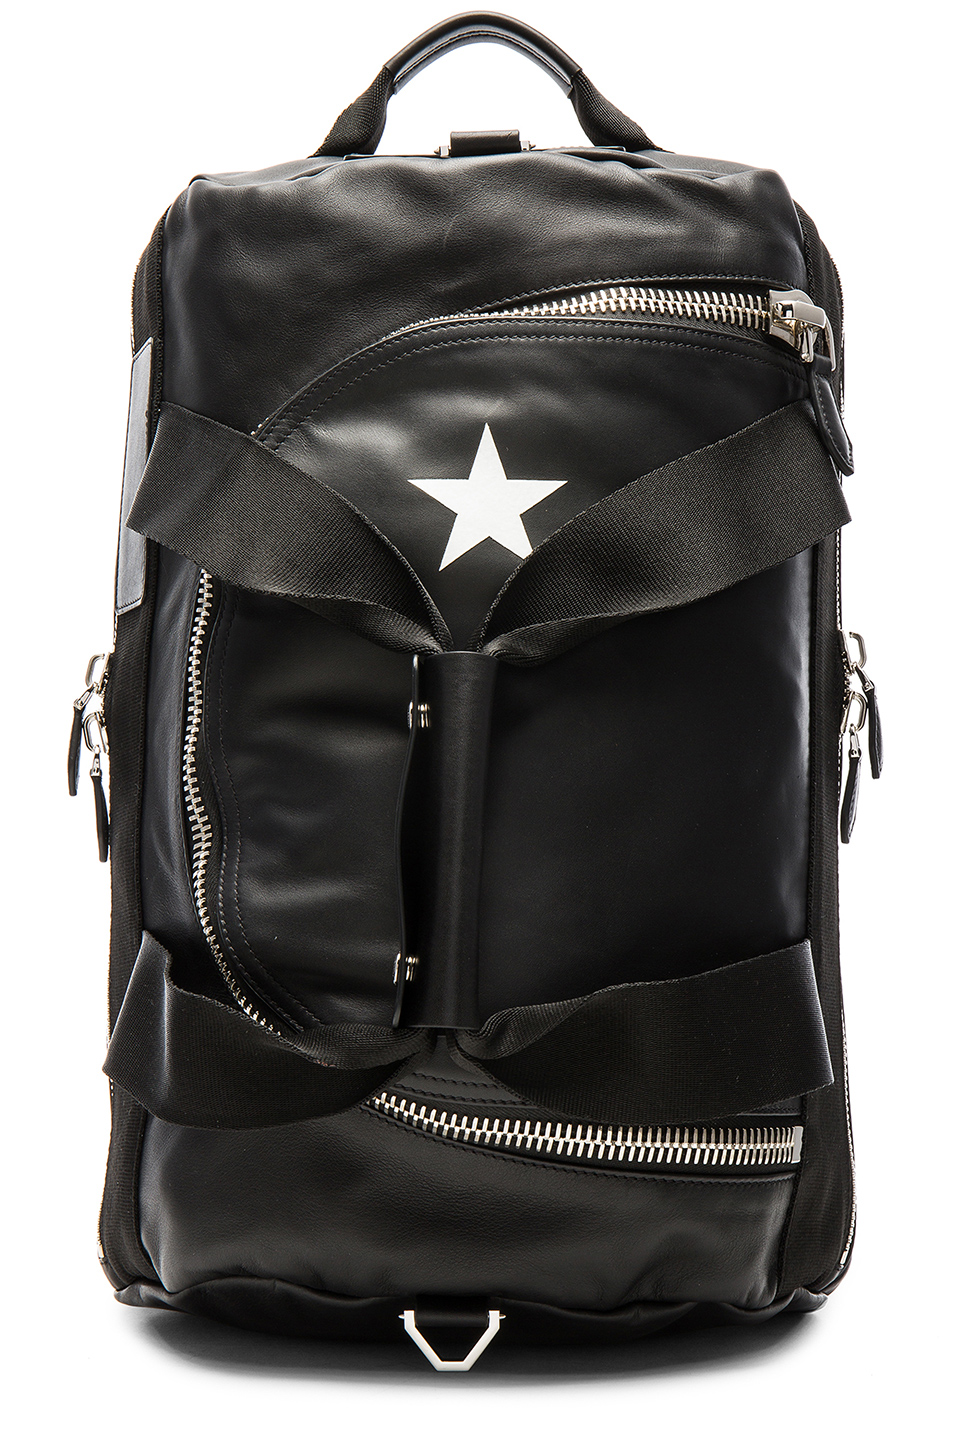 Givenchy Leather & Star Backpack in Black